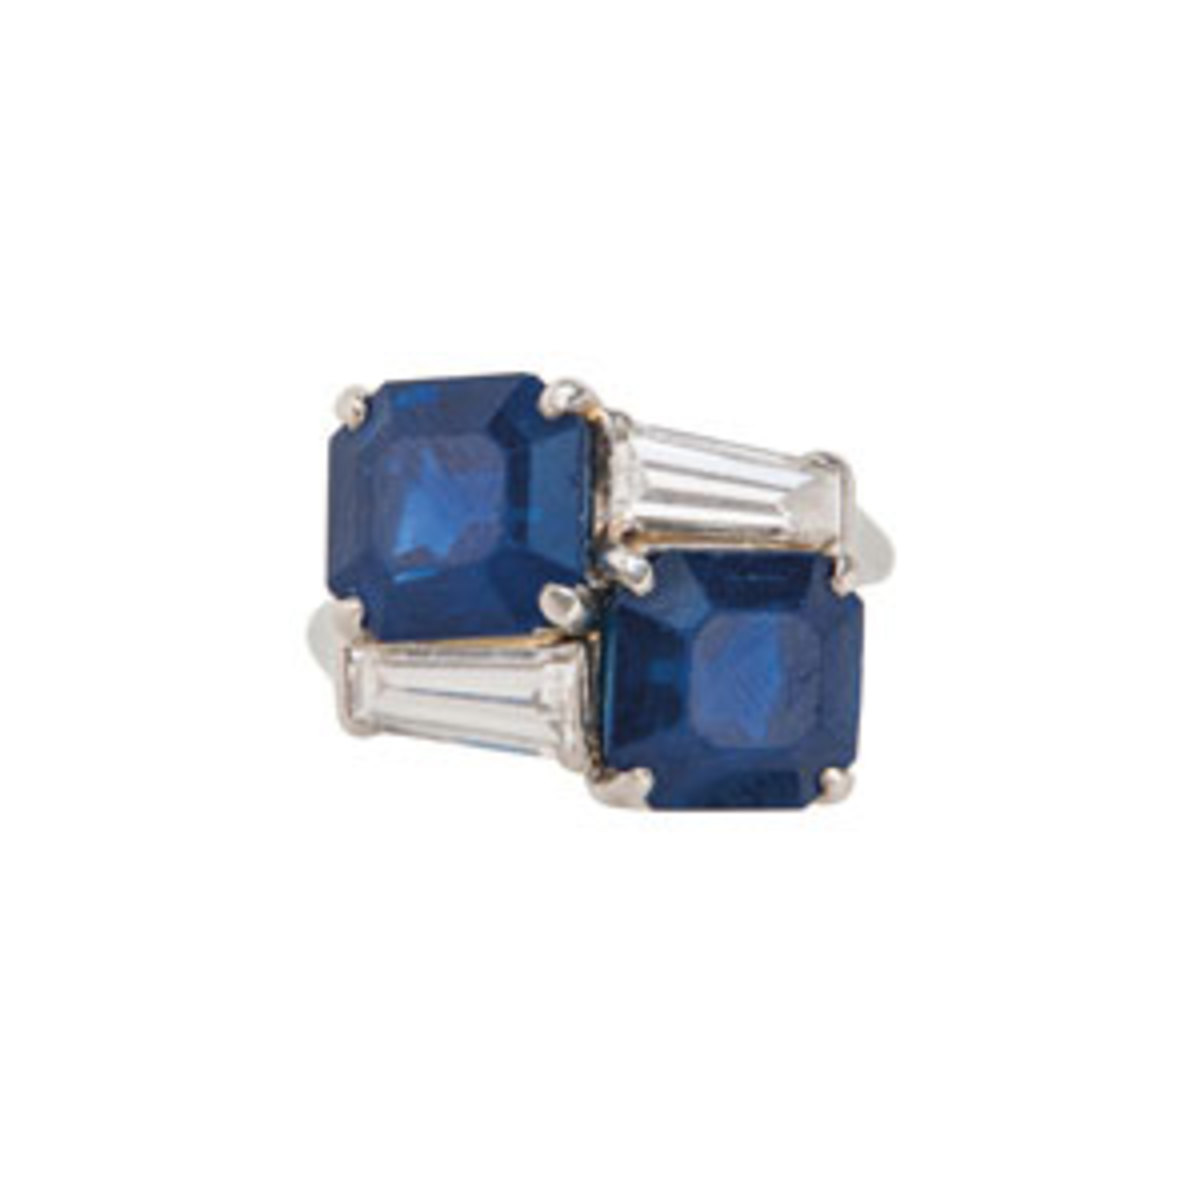 An important sapphire and diamond ring, Cartier,c. 1950s, set with two square-cut sapphires measuring approx. 9.21 x 8.64 x 6.55 and 9.27 x 8.75 x 6.05 mm, in a platinum and diamond mount set with tapered baguette-cut diamonds, size 5 3/4, numbered, signed.Estimate $300,000-$500,000.Images courtesy of Skinner Auctioneers and Appraisers